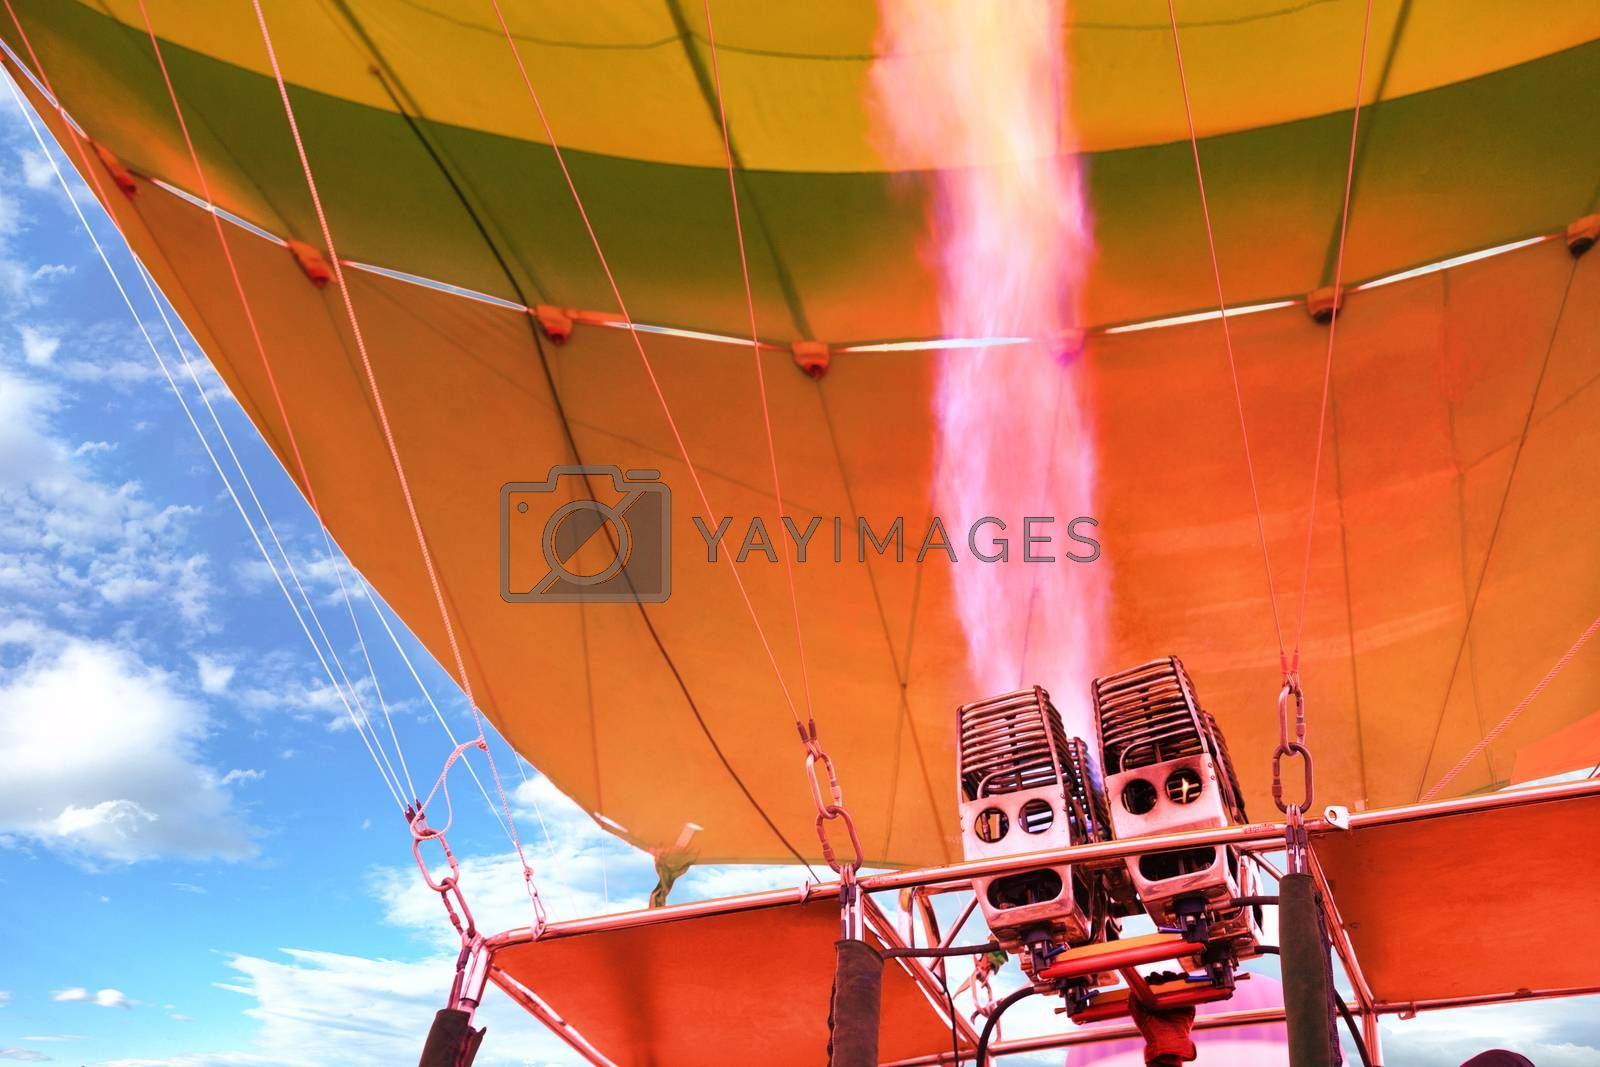 The flame of a powerful gas burner heats up, becomes fiery coral in color and fills the balloon balloon with hot air